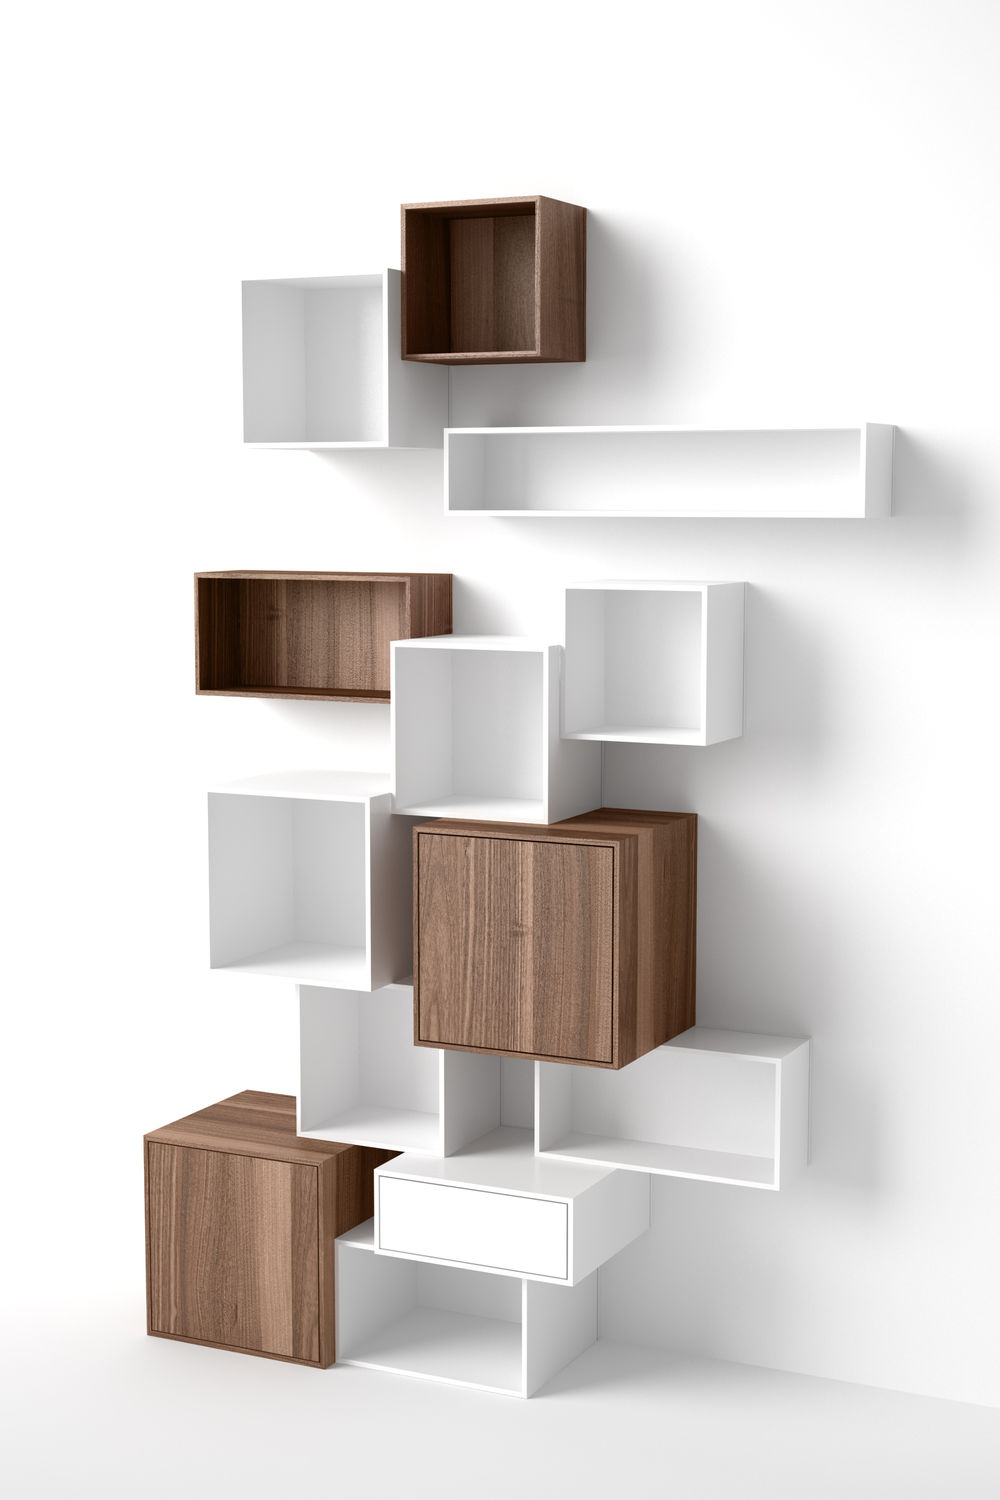 Regalwürfel Weiß Modular Shelf Contemporary Mdf Commercial Regal Weiß